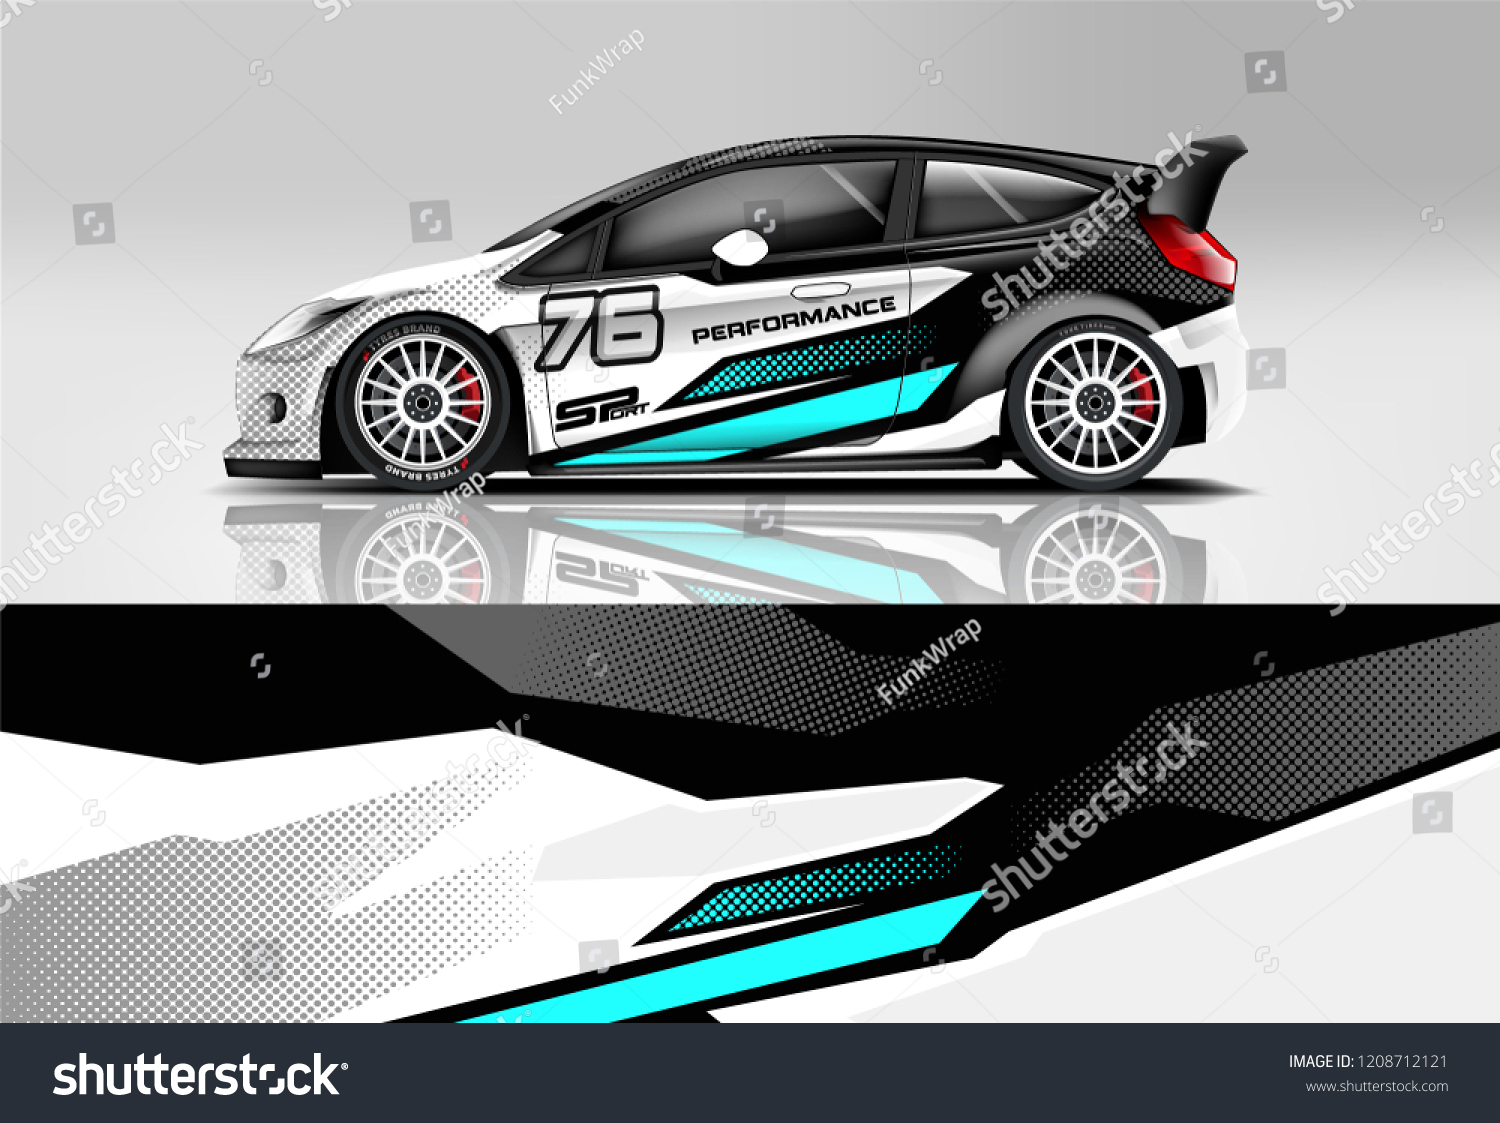 Racing hatchback car wrap decal and sticker design vector eps 10 format